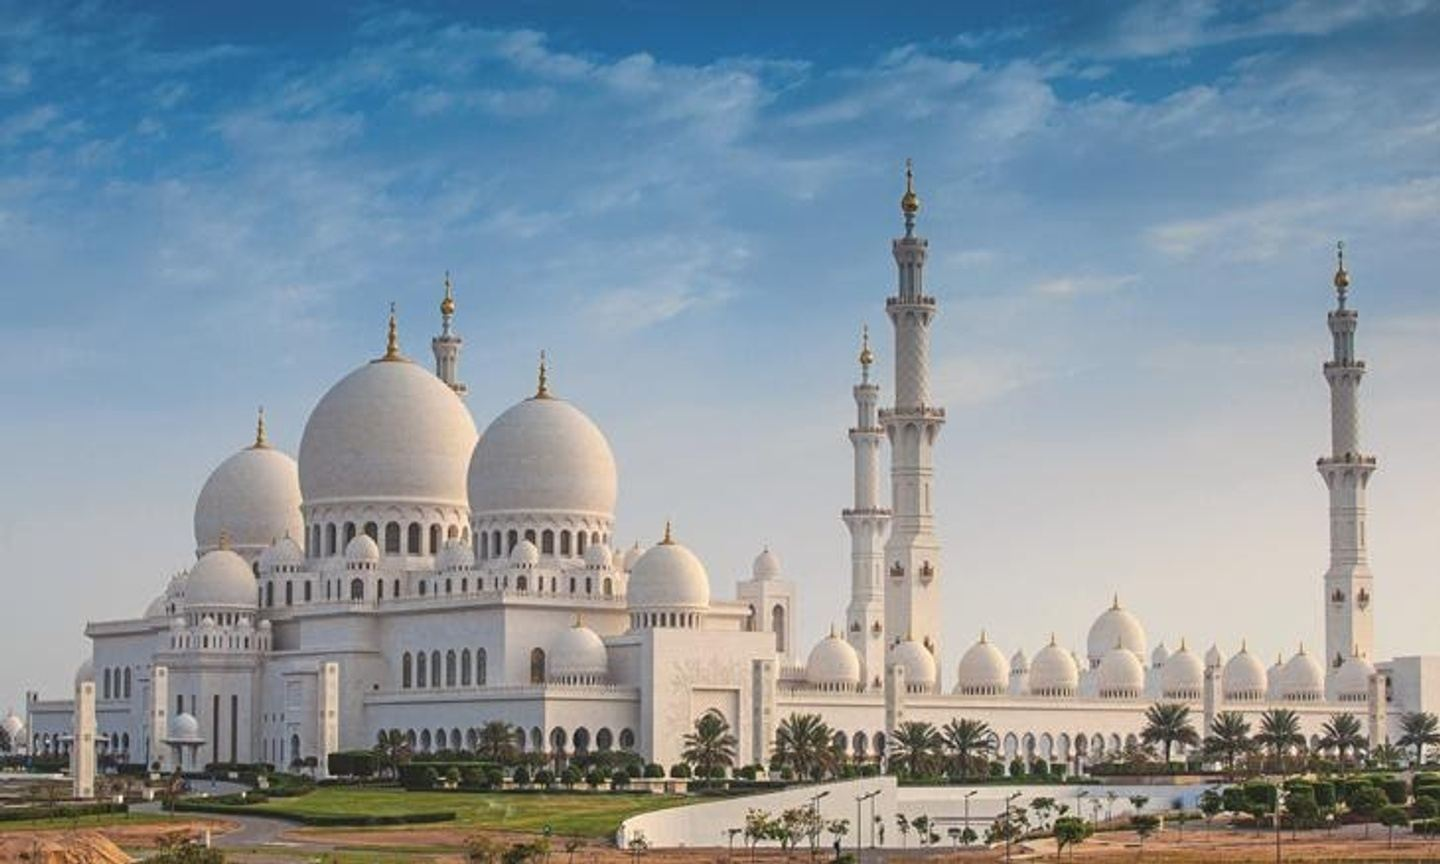 Abu Dhabi City Tour with Best Itinerary